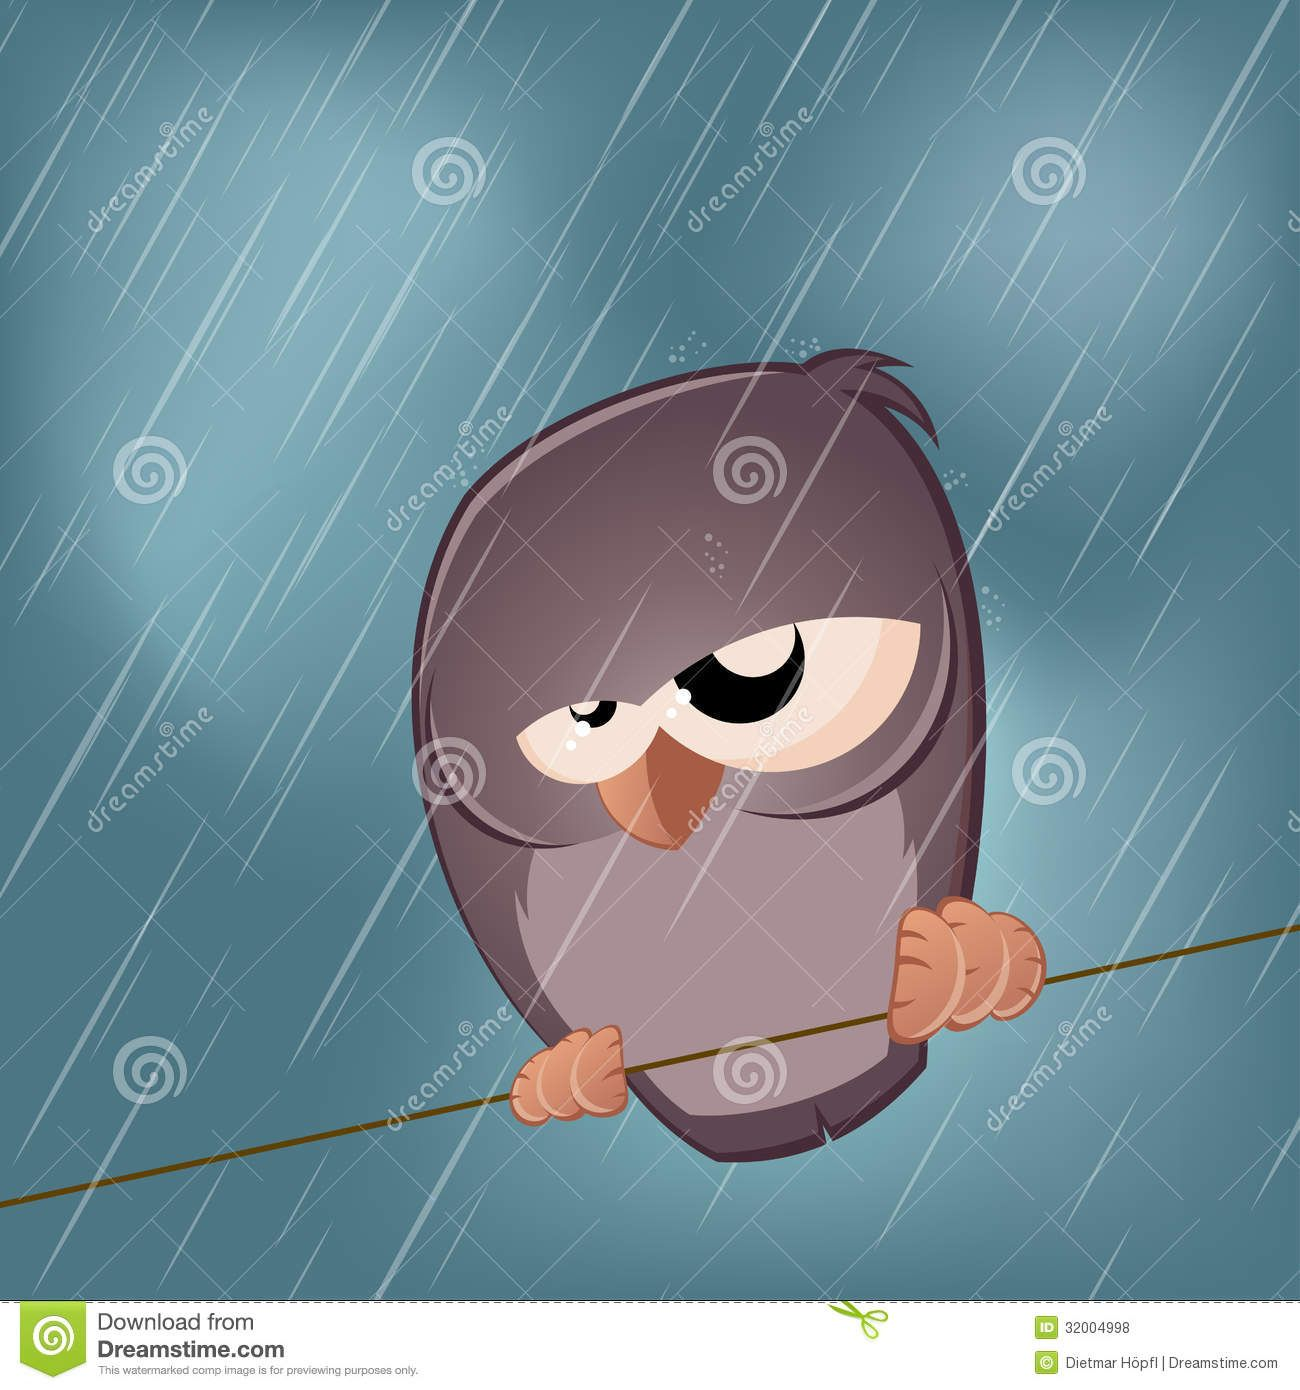 Cold Rainy Day Funny Quotes: Funny Illustration Of A Sad Bird On A